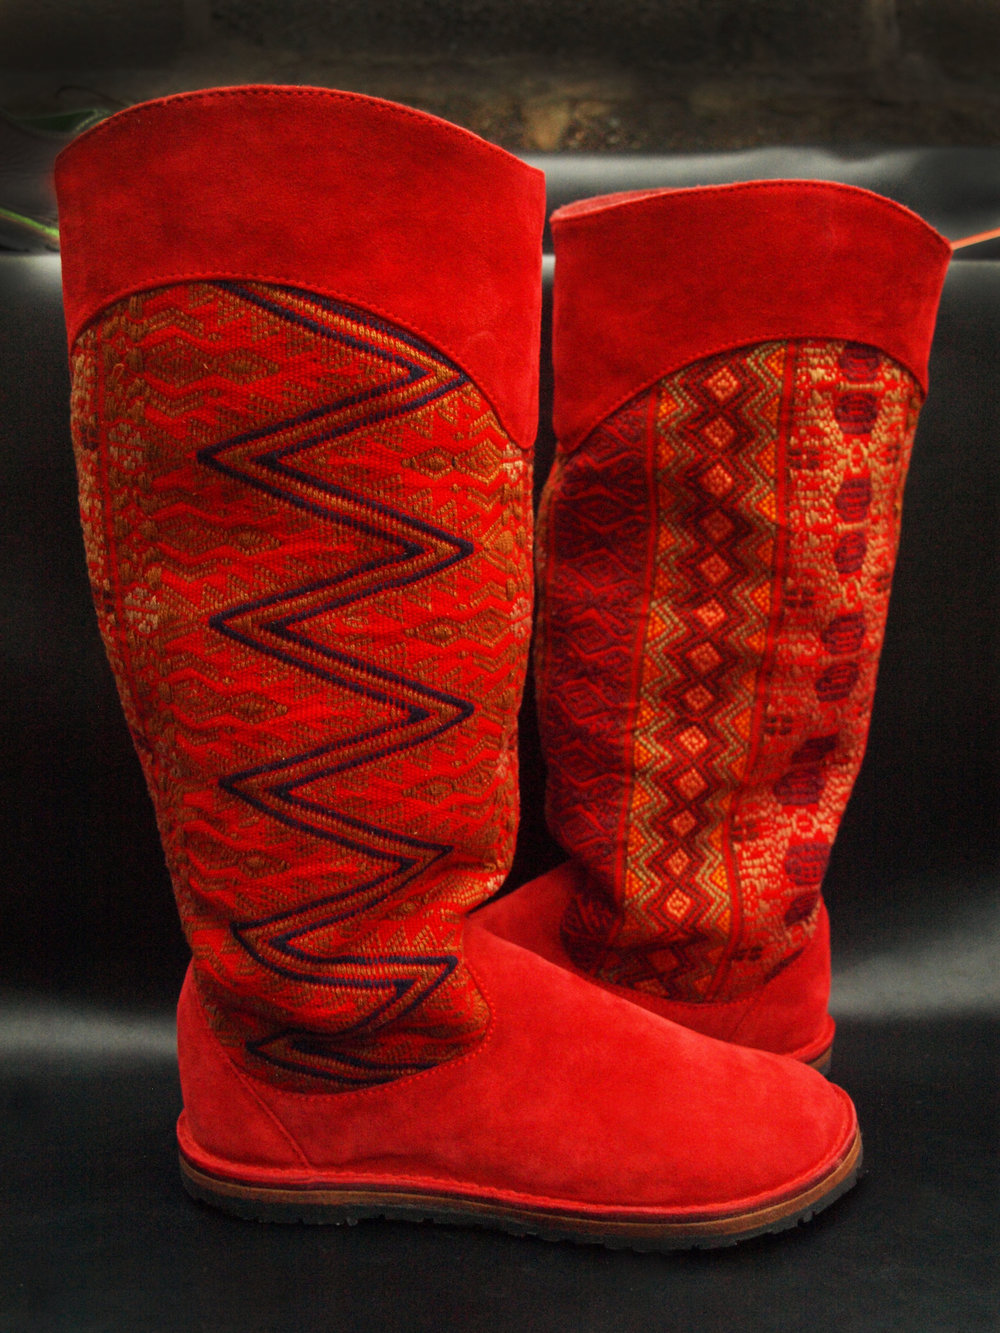 Red suede boots made with hand woven Mexican fabric 2017.jpg